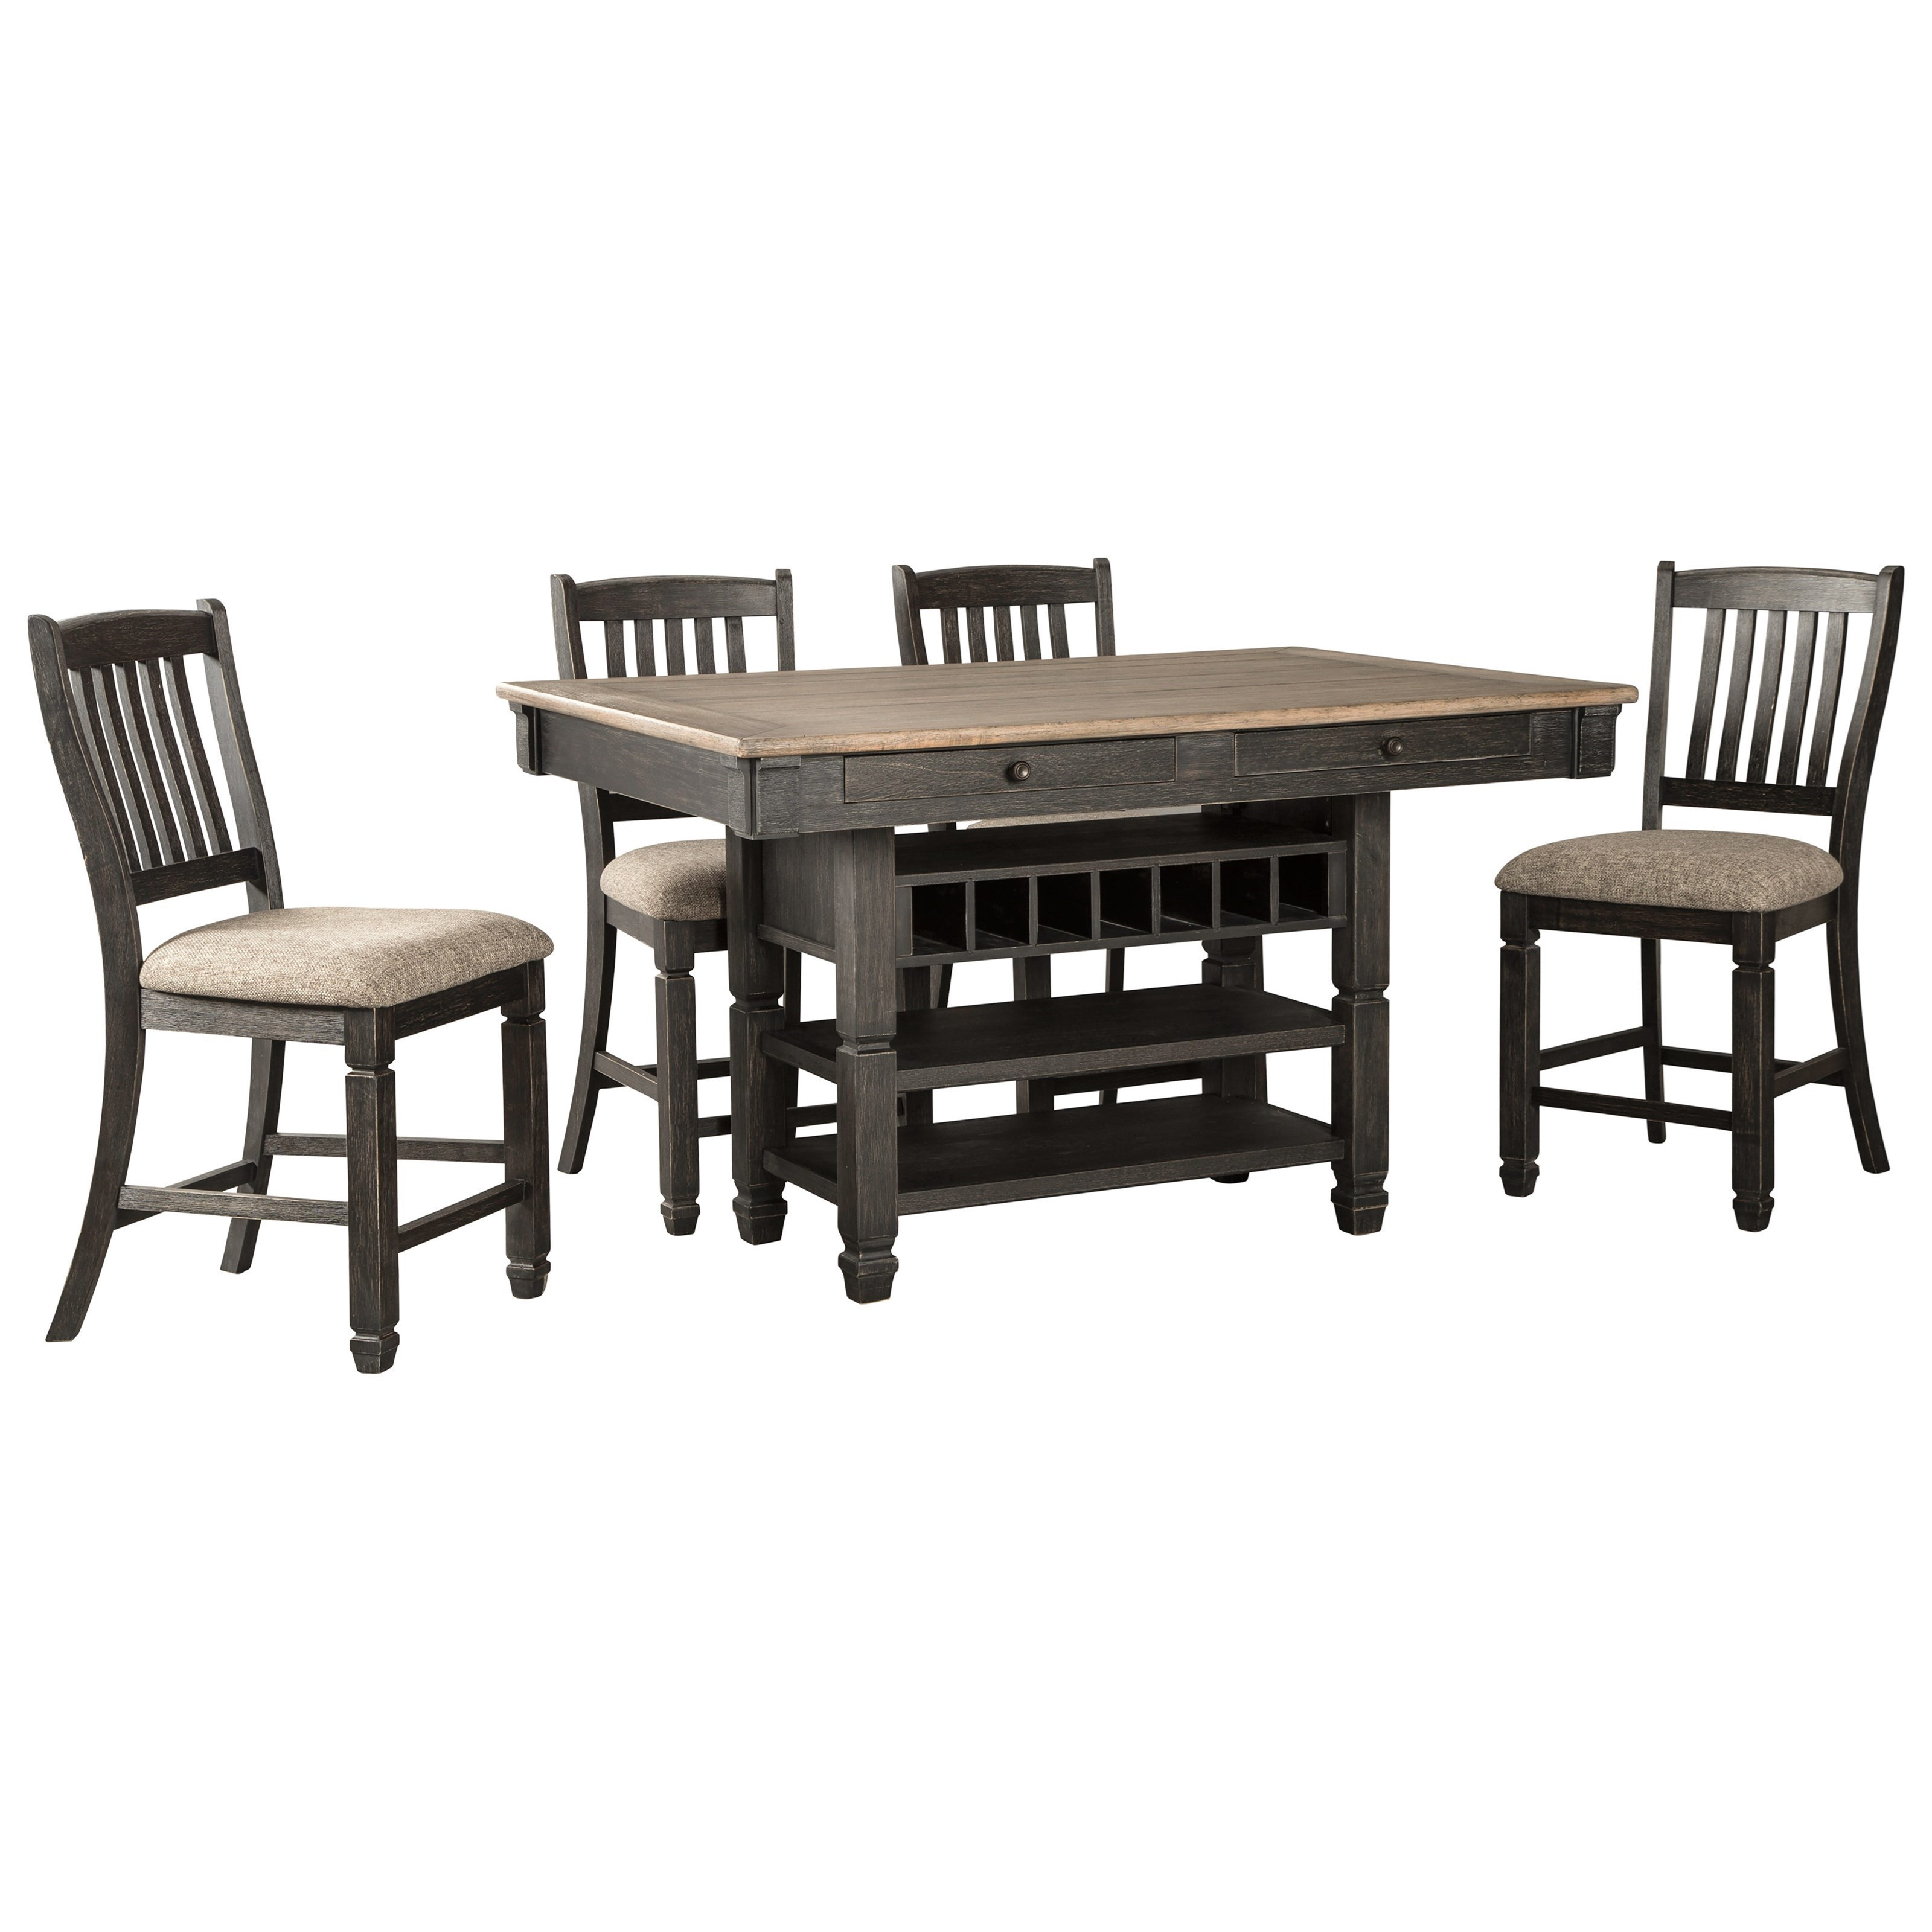 Merveilleux Signature Design By Ashley Tyler Creek5 Piece Counter Table And Stool Set  ...